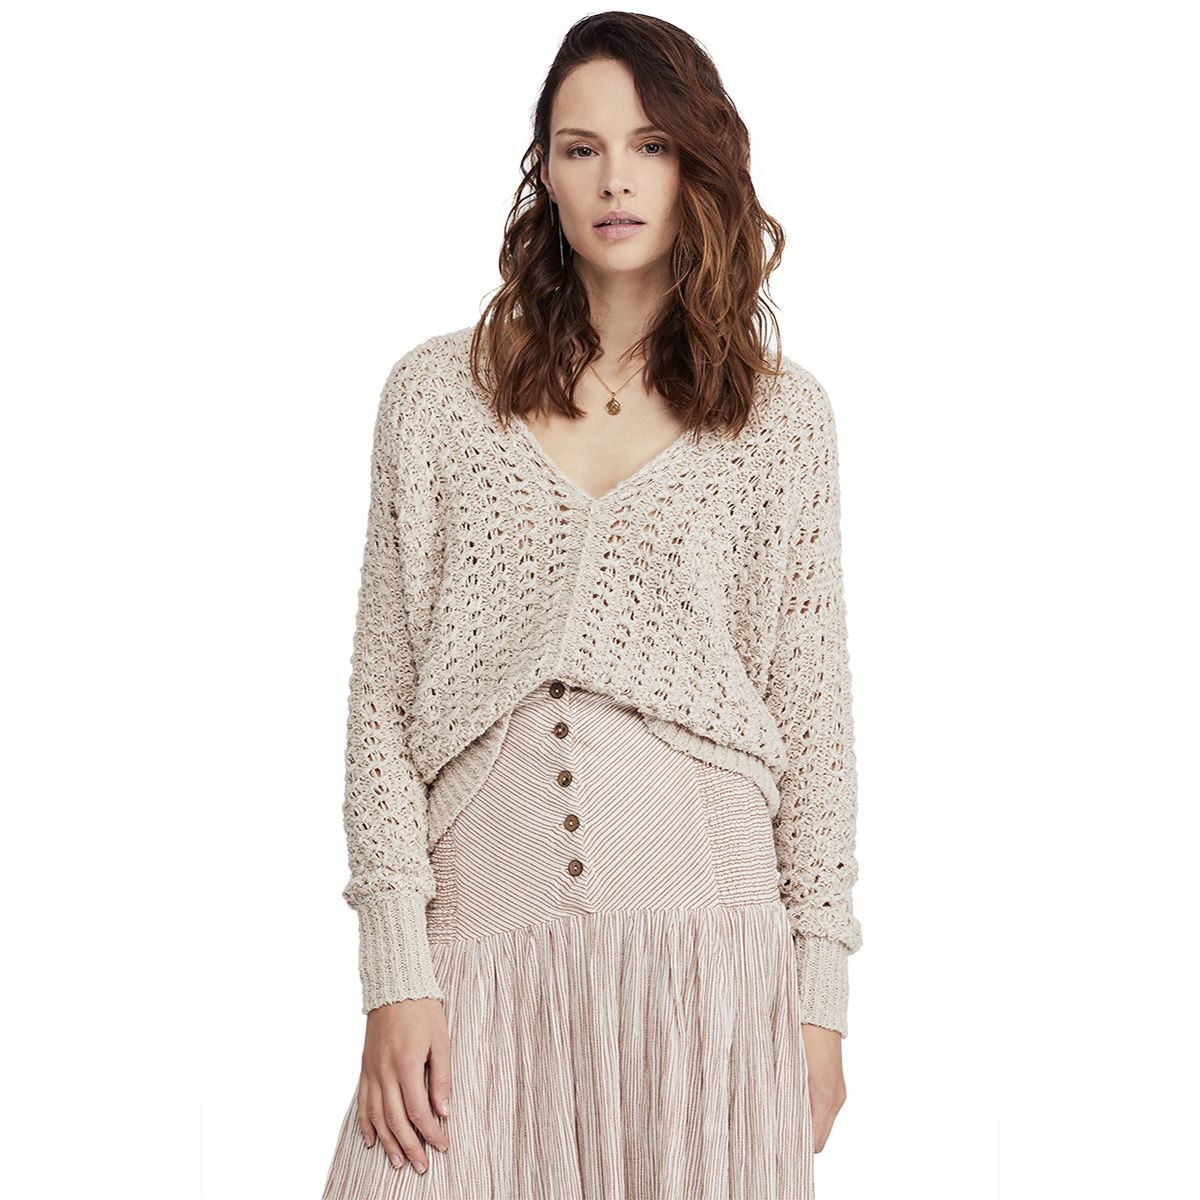 c457e847edb Free People Clothing - Womens Apparel - Macy s